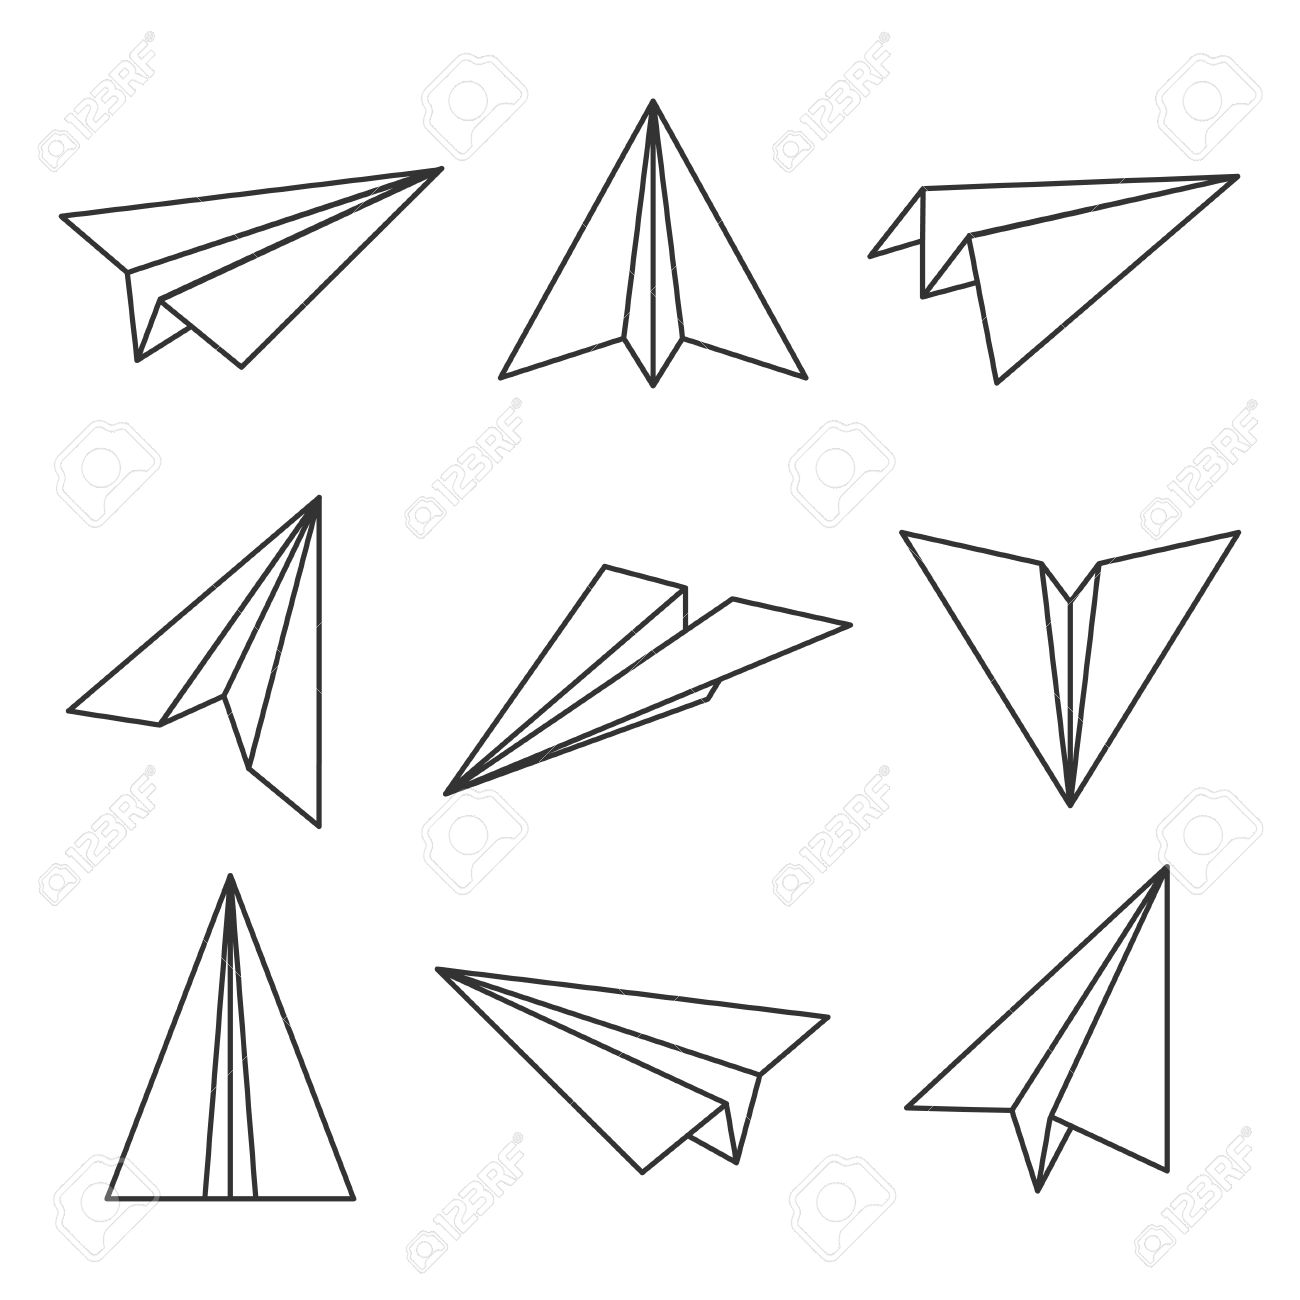 Paper plane outline  Glider, made out of folded paper, toy aircraft